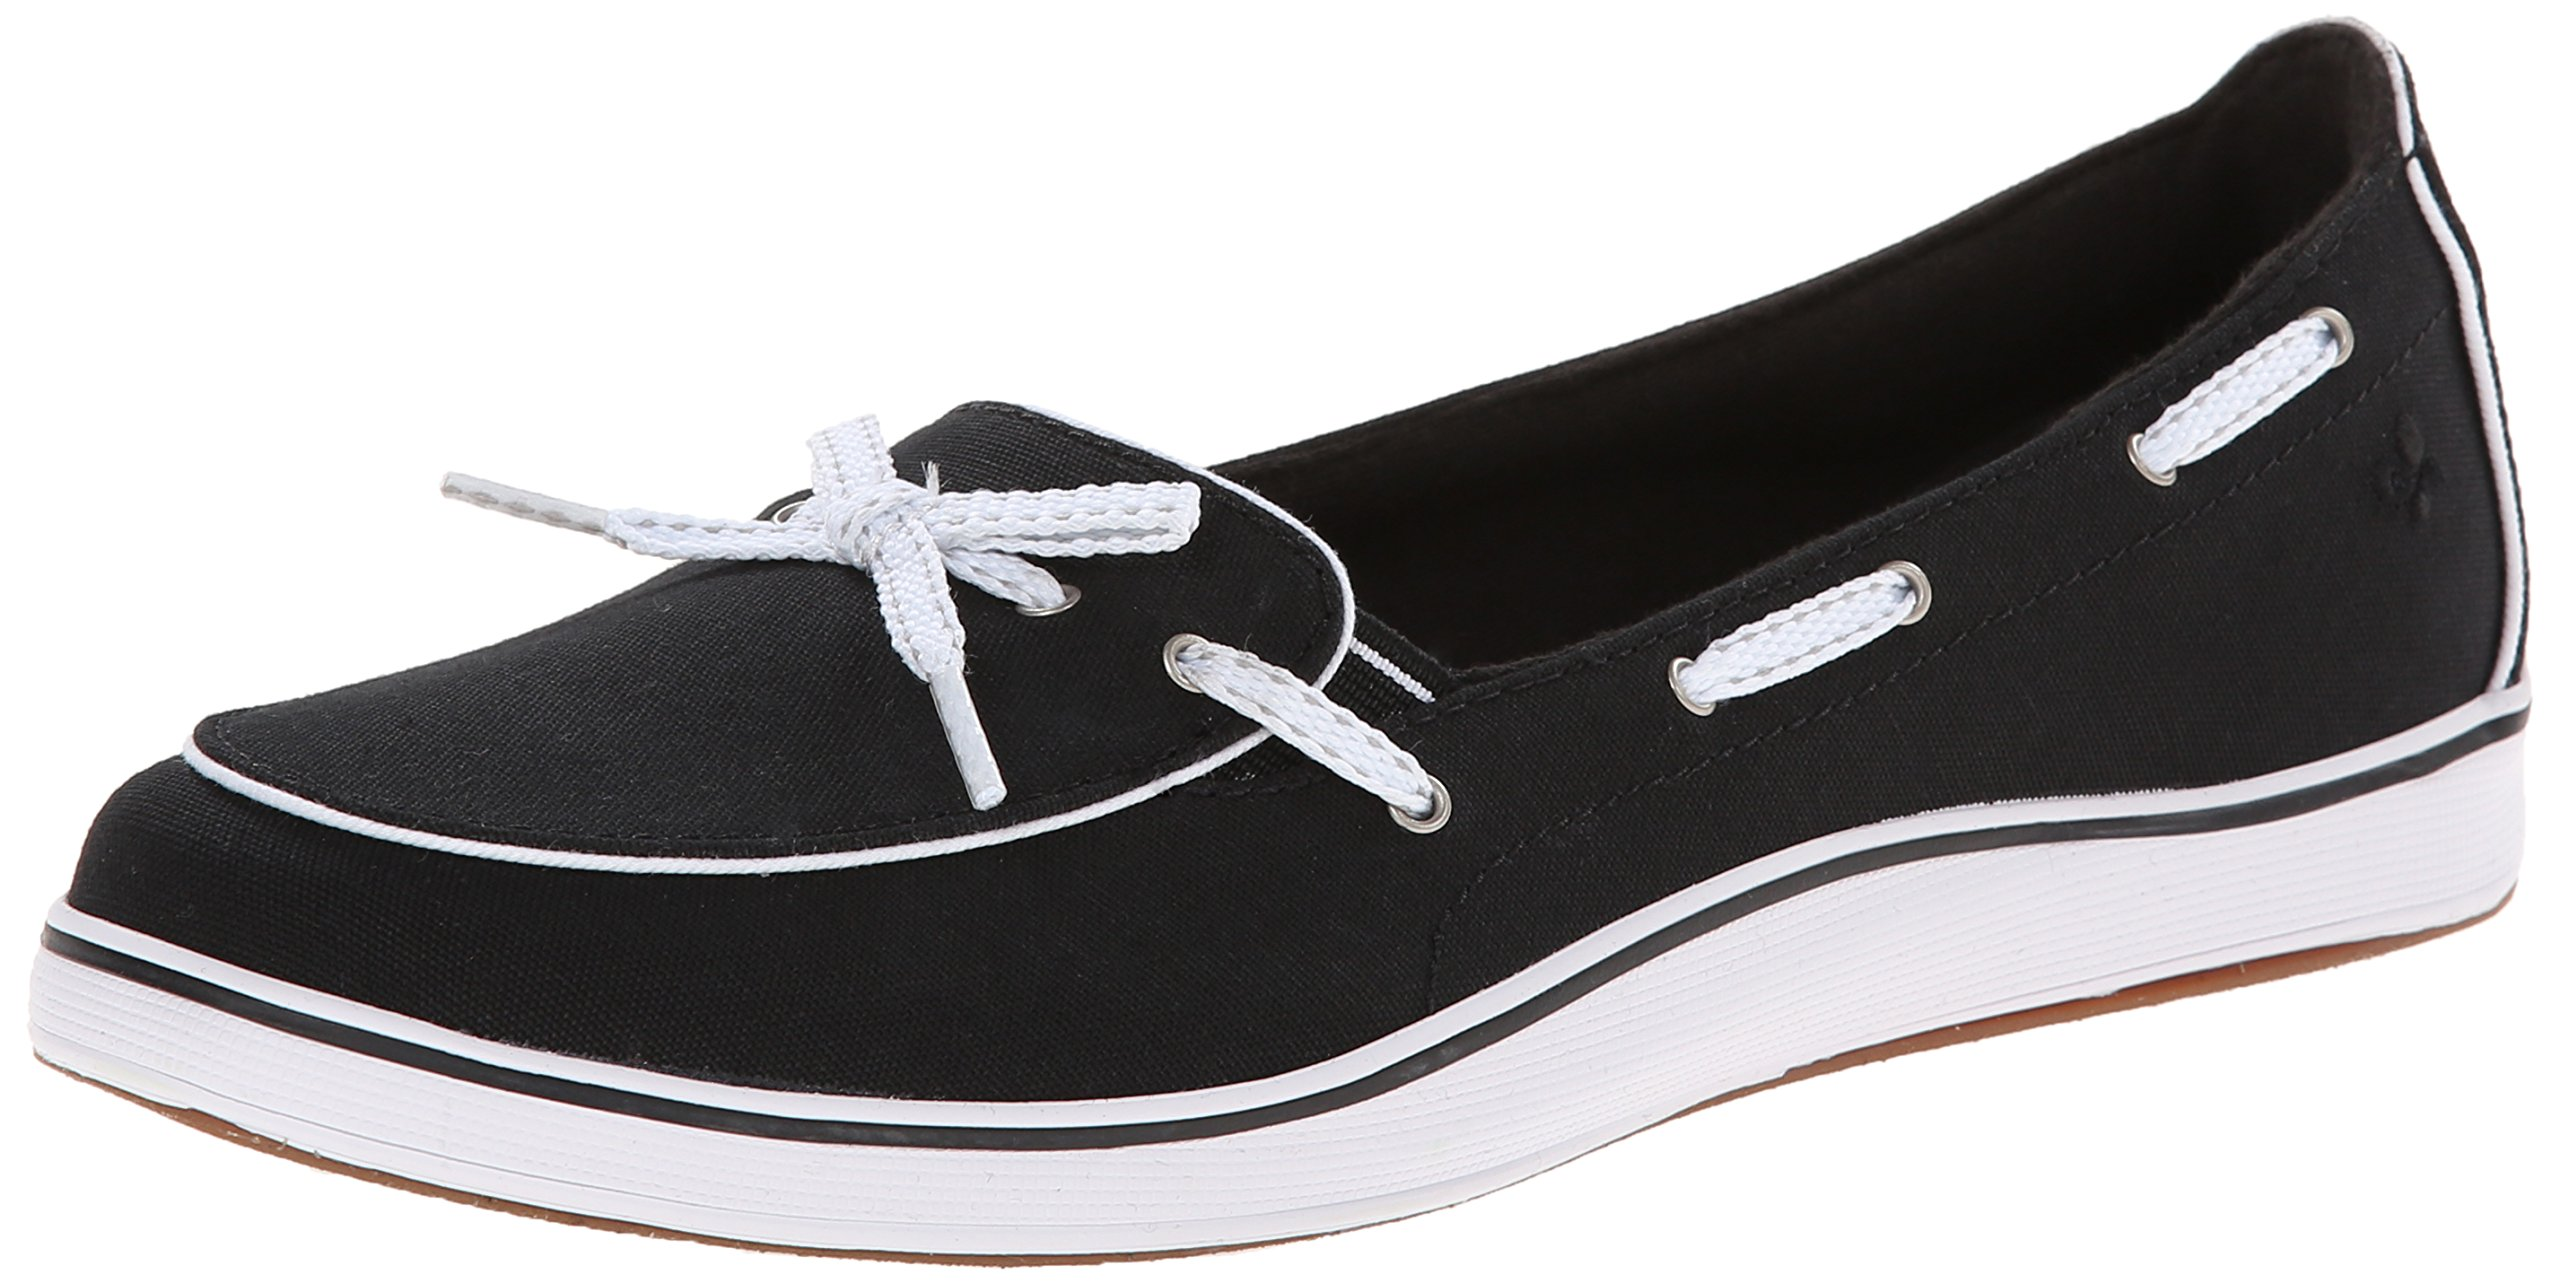 Grasshoppers Women's Windham Slip-On, Black, 8.5 M US